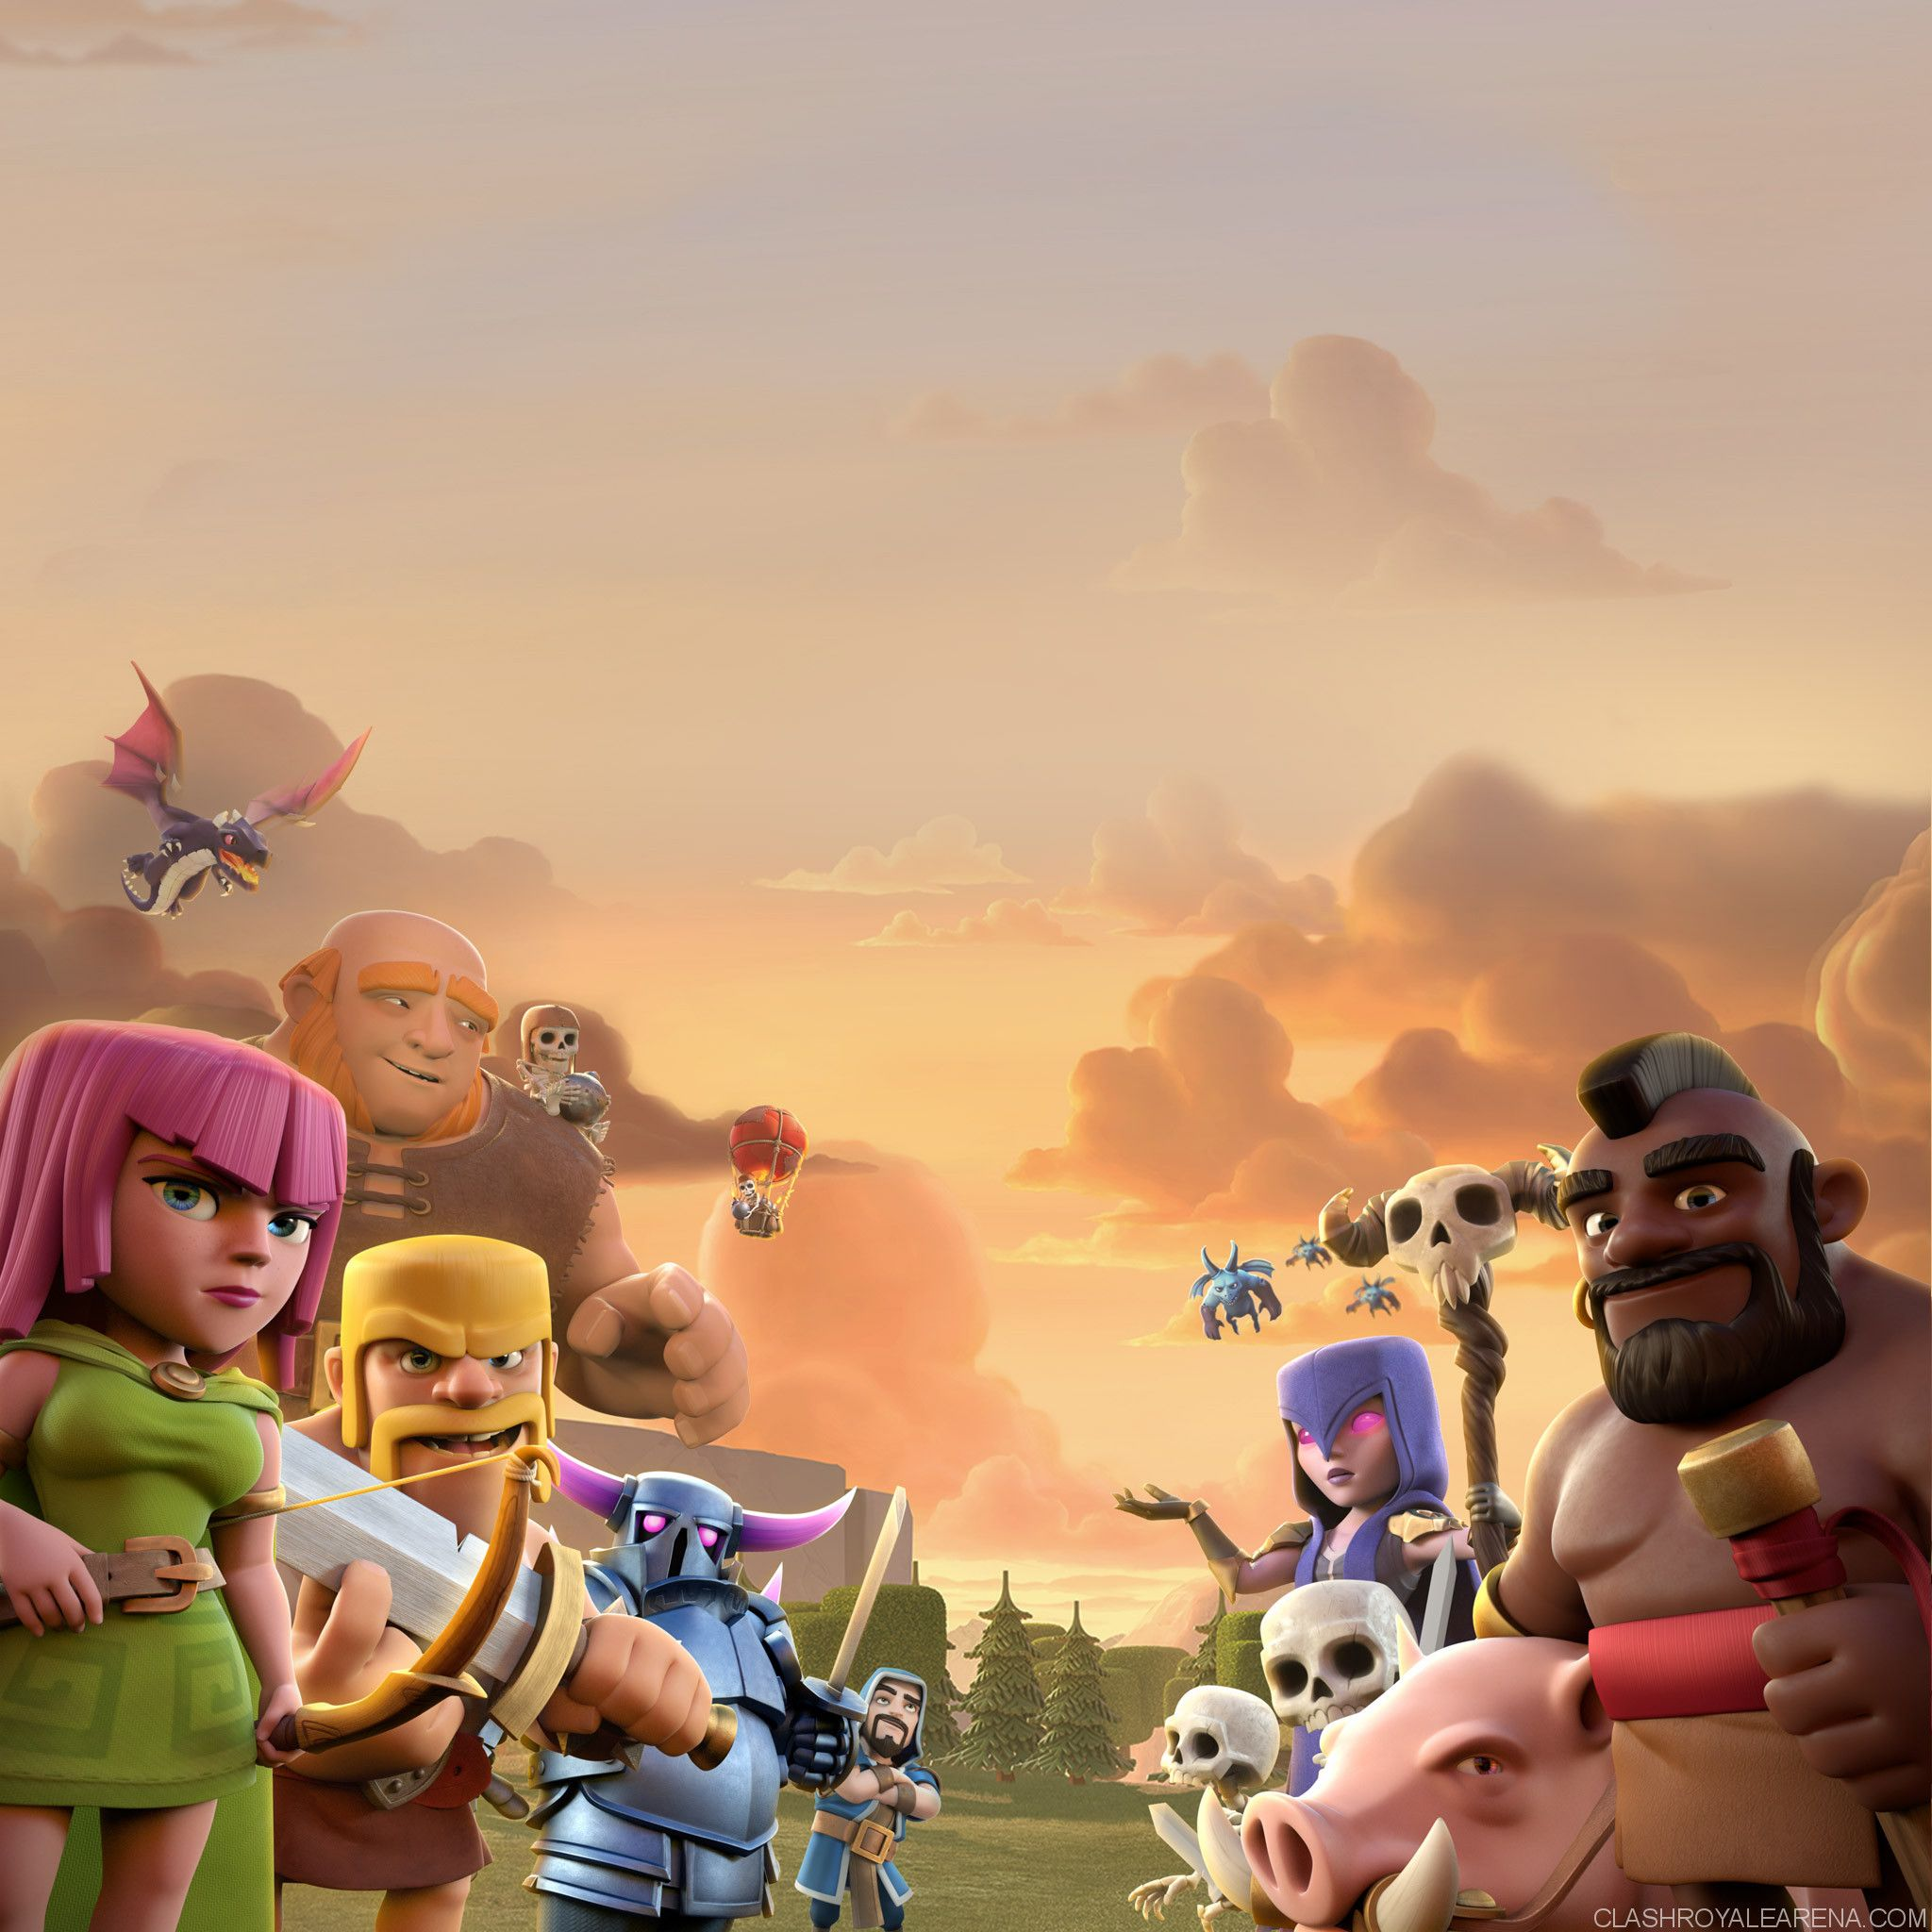 Clash Royale Wallpaper Collection Clash Royale Guides Clash Royale Wallpaper Clash Royale Clash Of Clans